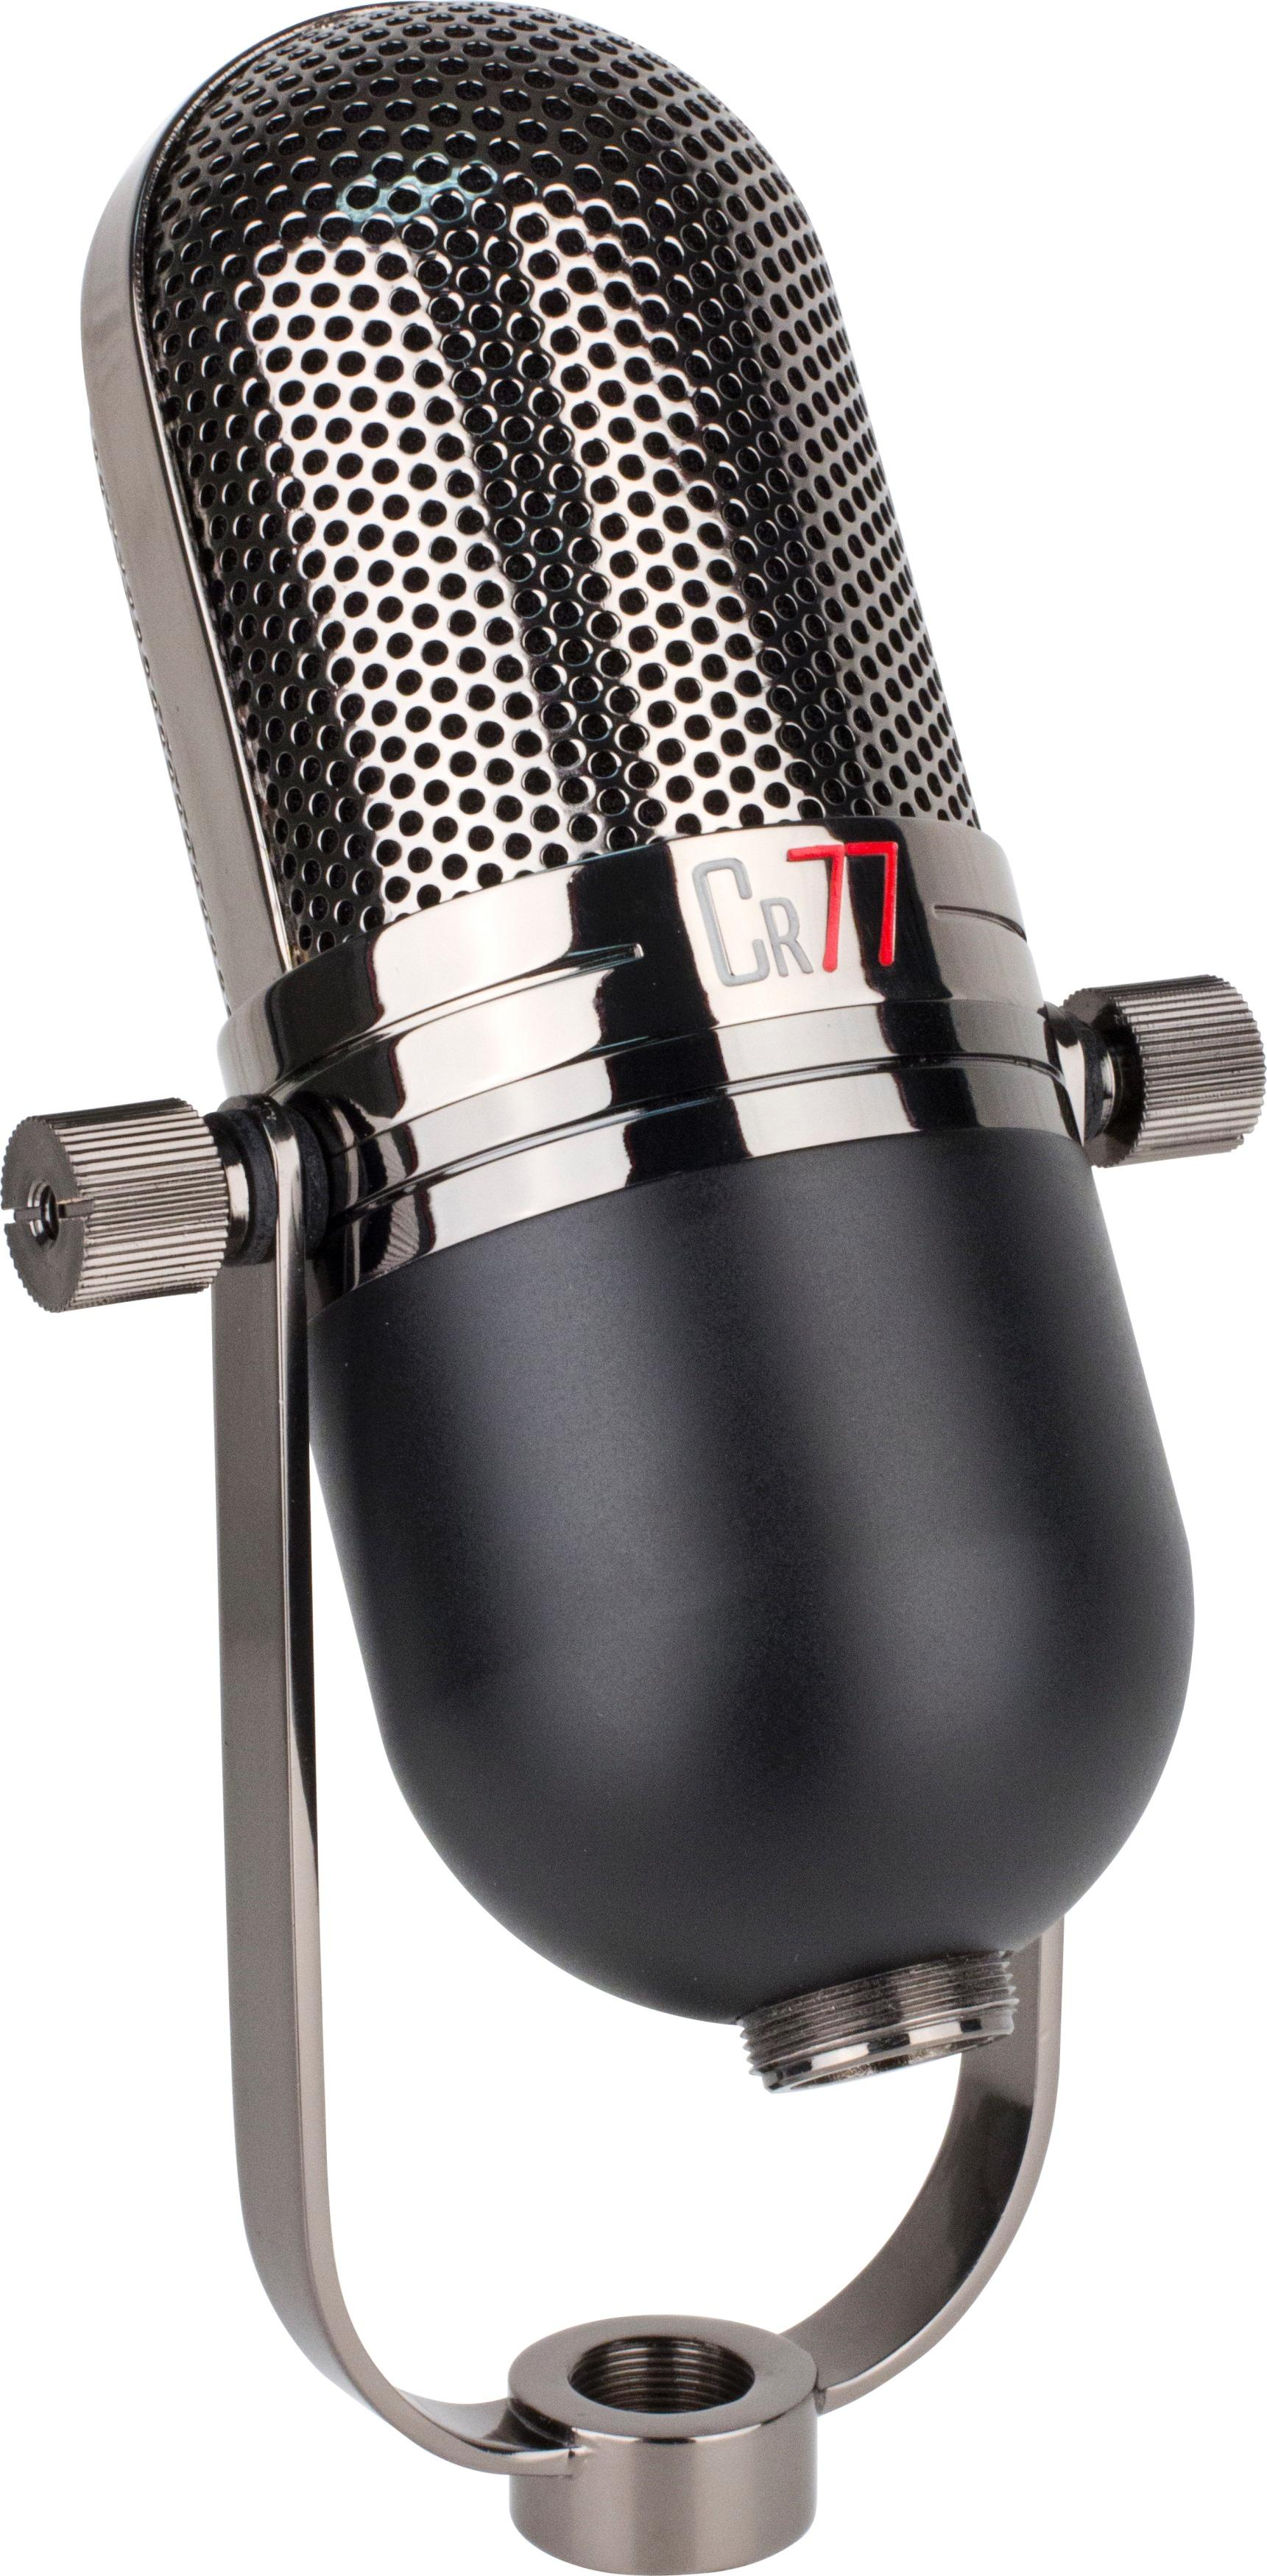 Amazon.com: MXL MXLCR77 Dynamic Stage Vocal Microphone: Musical ...